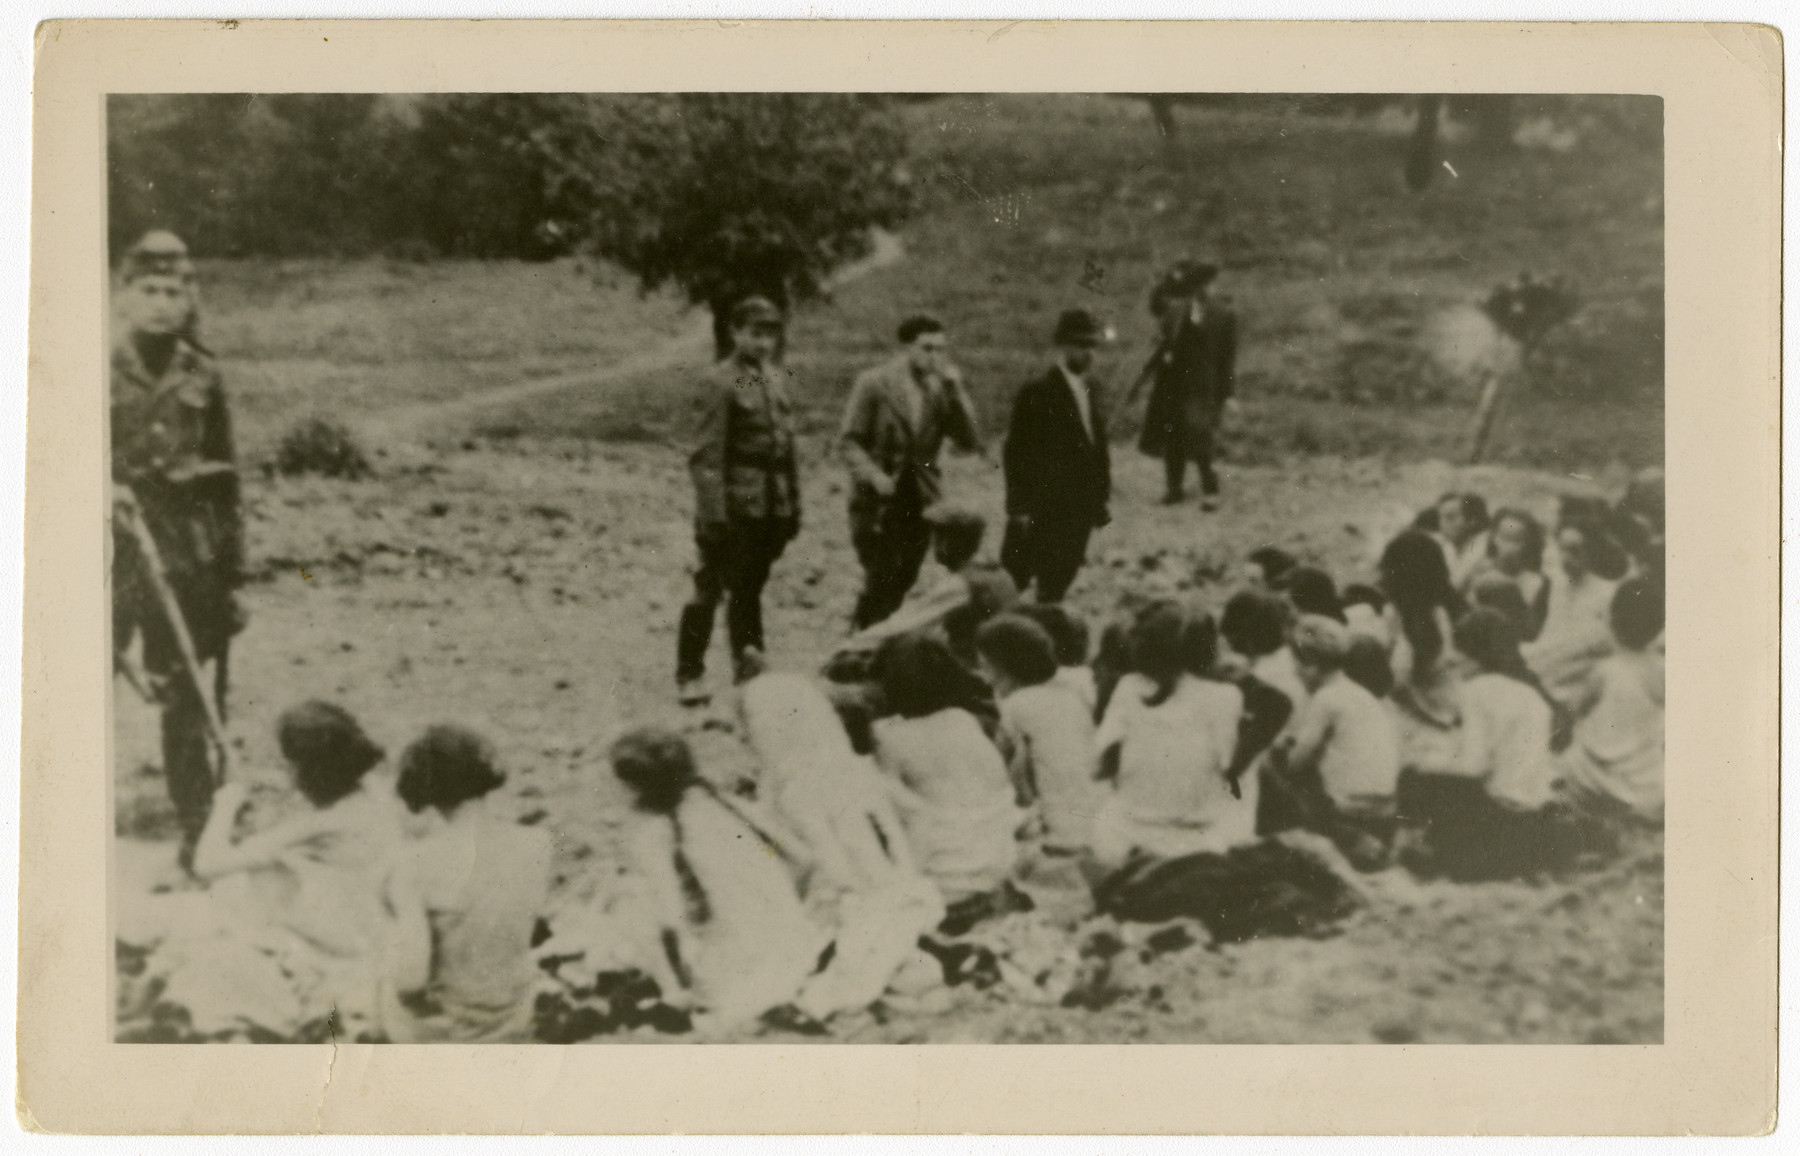 German police and auxiliaries in civilian clothes look on as a group of Jewish women are forced to undress before their execution.  This copy print of a wideley circulated image (see WS# 43195) is one of twenty-six  photographs and copy prints contained in an album found by Jacob Igra in an apartment in Sosnowiec after the war. Many of the photographs are believed to have been taken by a soldier with the SD-SIPO (Sicherheitspolizei) following the invasion of Poland in 1939. Additional photographs depict einsatzgruppen activities at sites throughout Nazi occupied Eastern Europe and may have been later additions to the album.